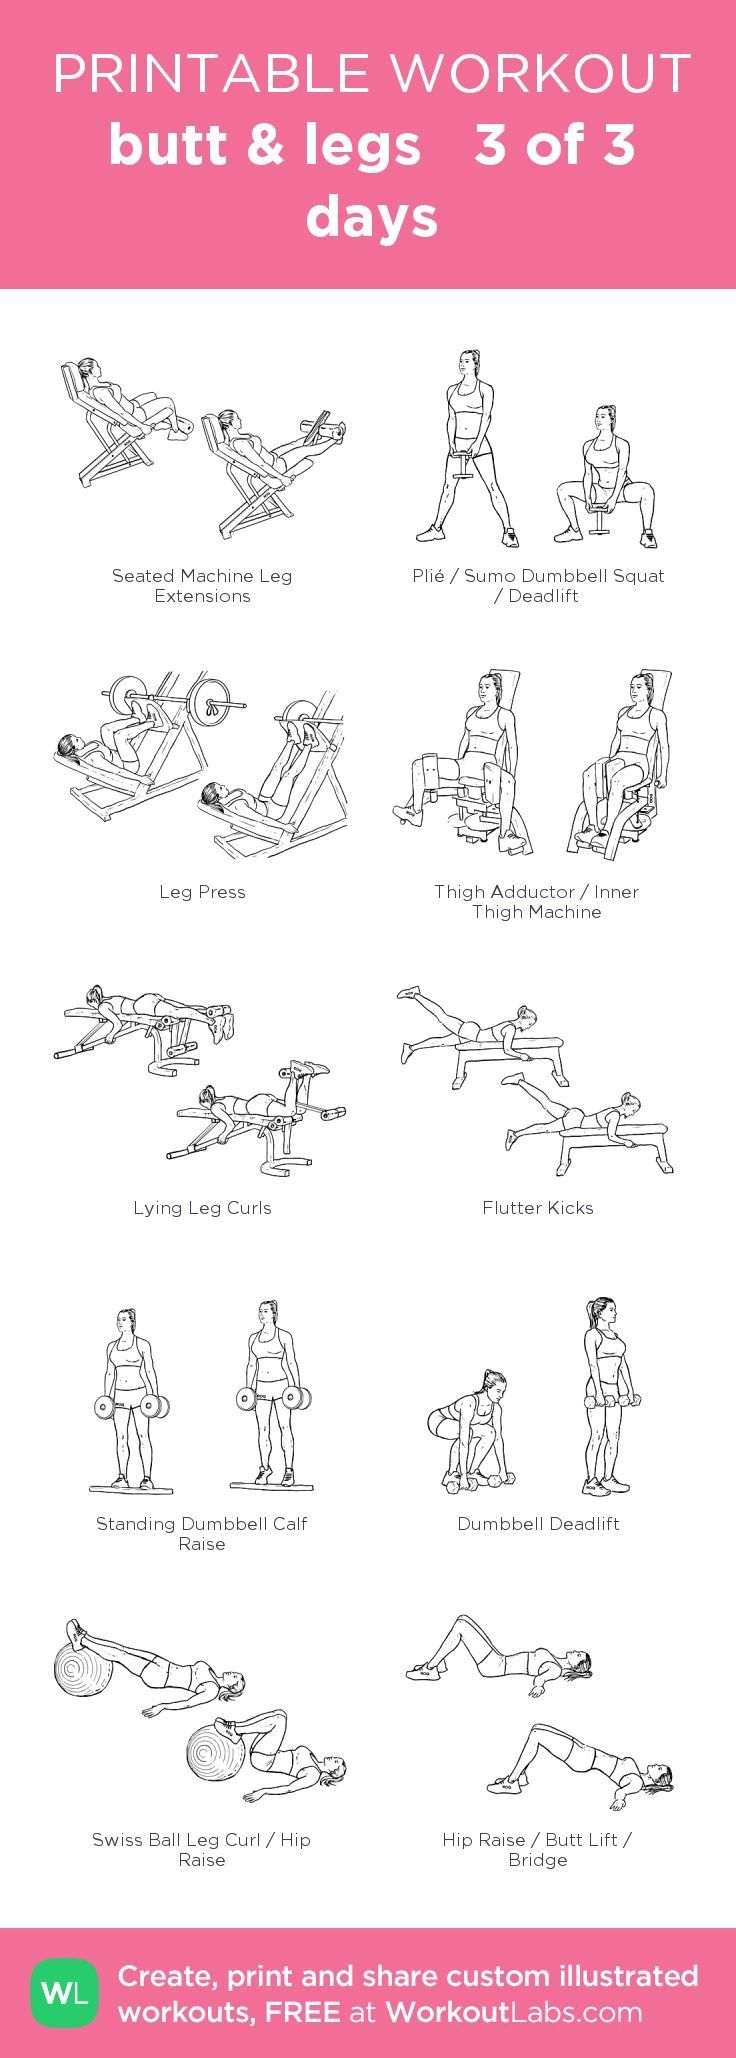 Pin by Sarah Hubbard on Fitness | Gym workouts, Workout